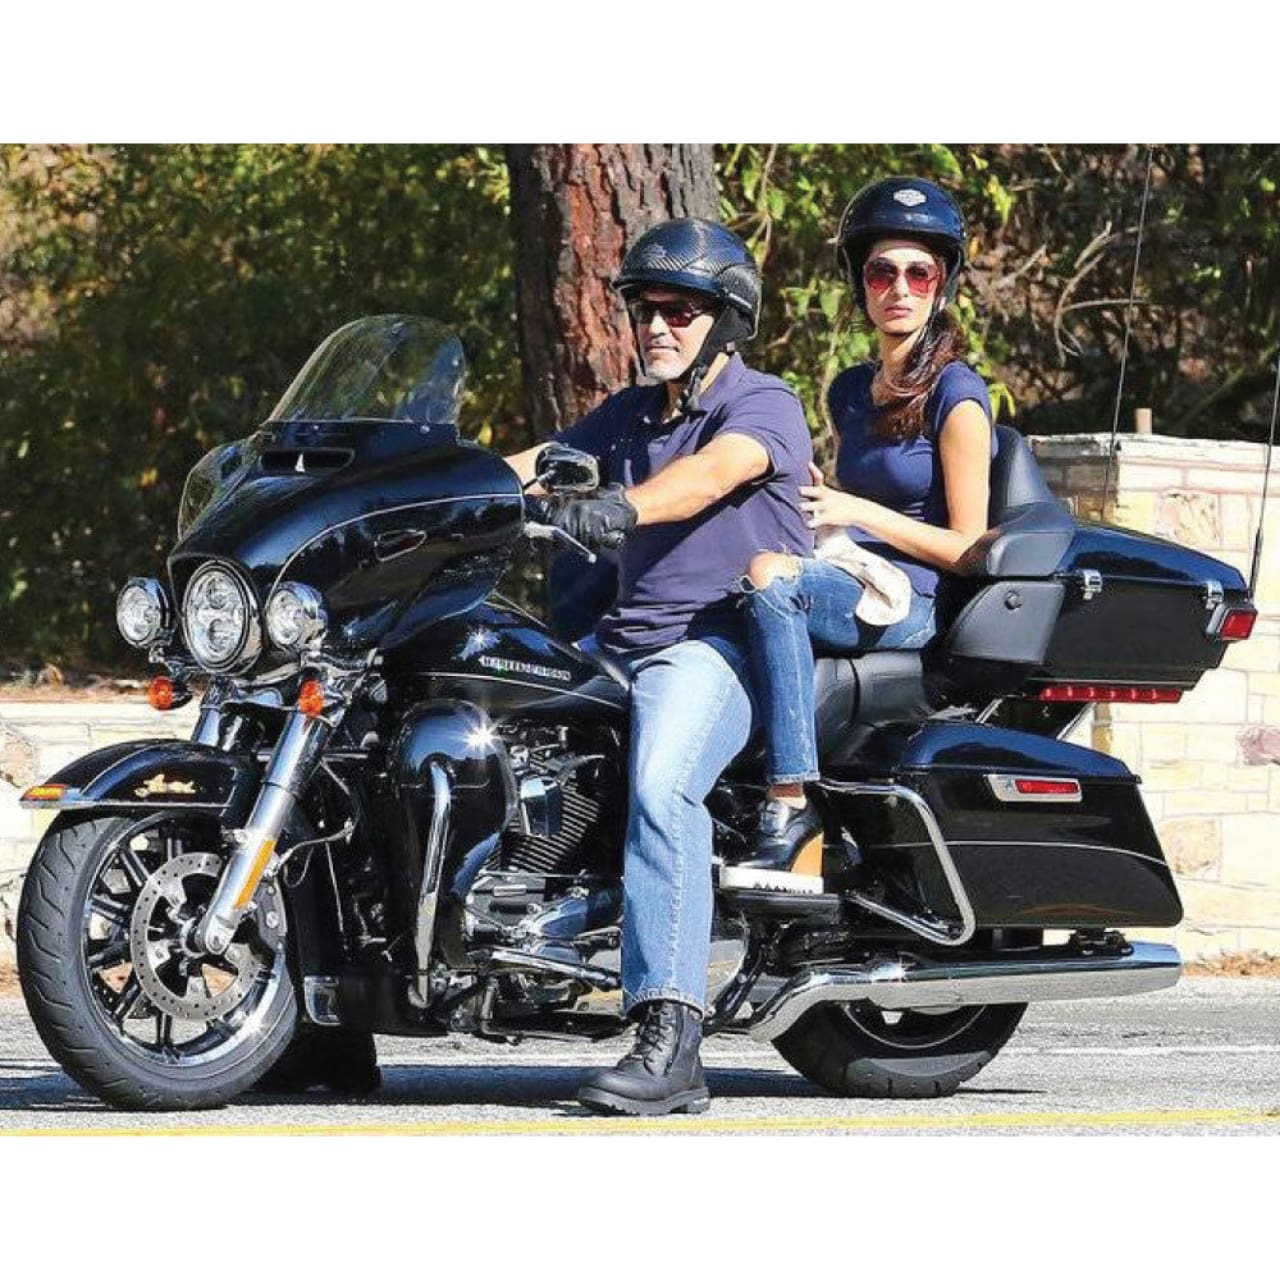 All for a Good Cause: George Clooney Donating His Harley to 911 Veterans